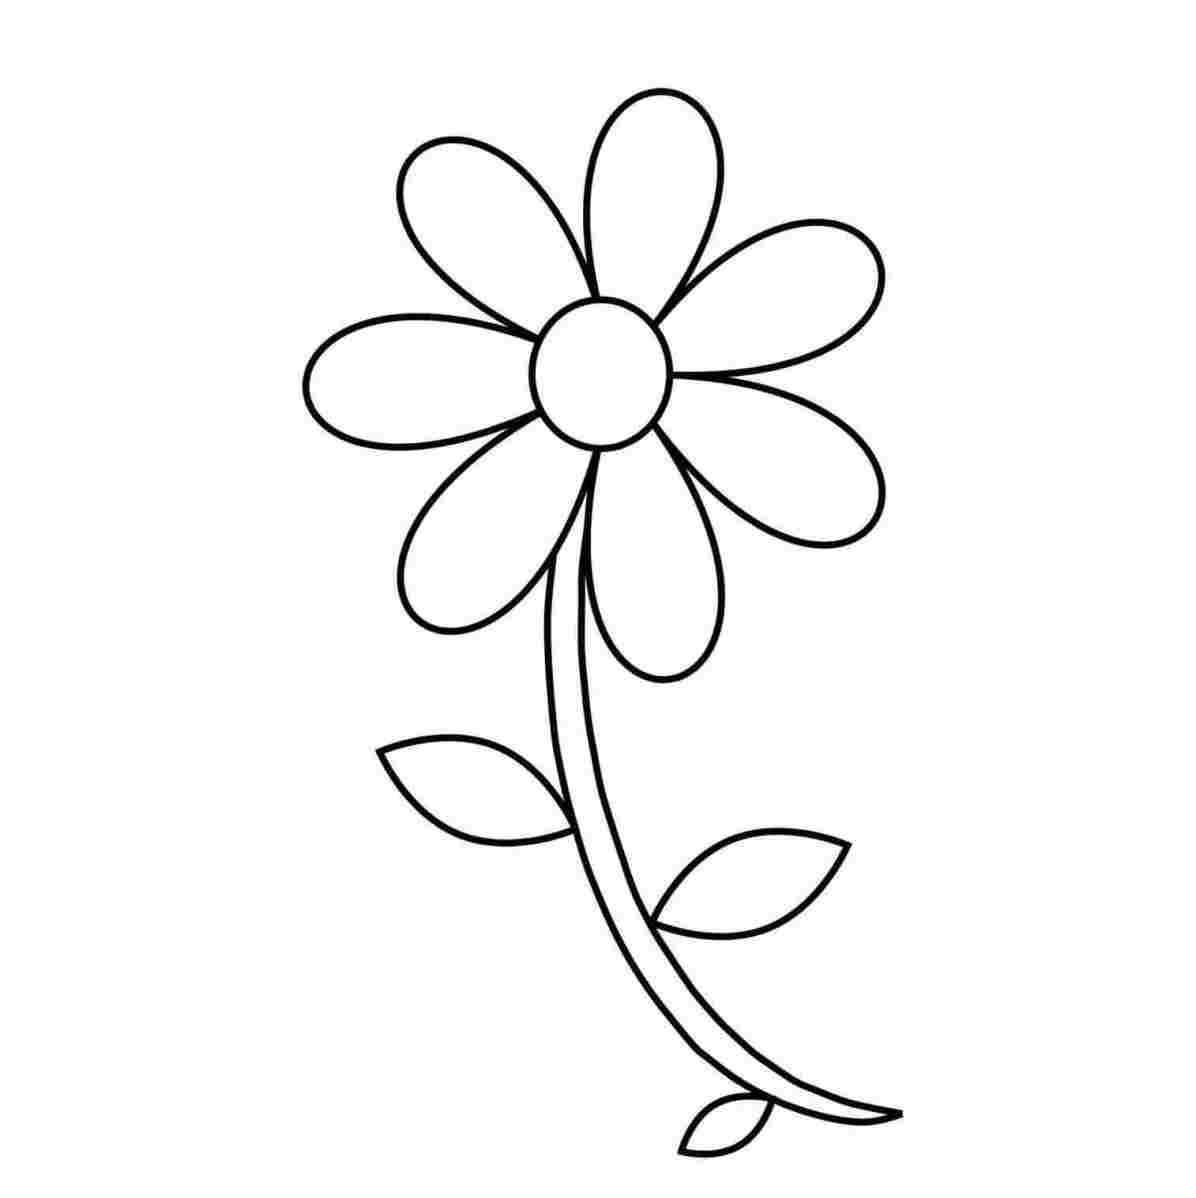 1196x1198 Simple Drawing Of Flowers For Kids